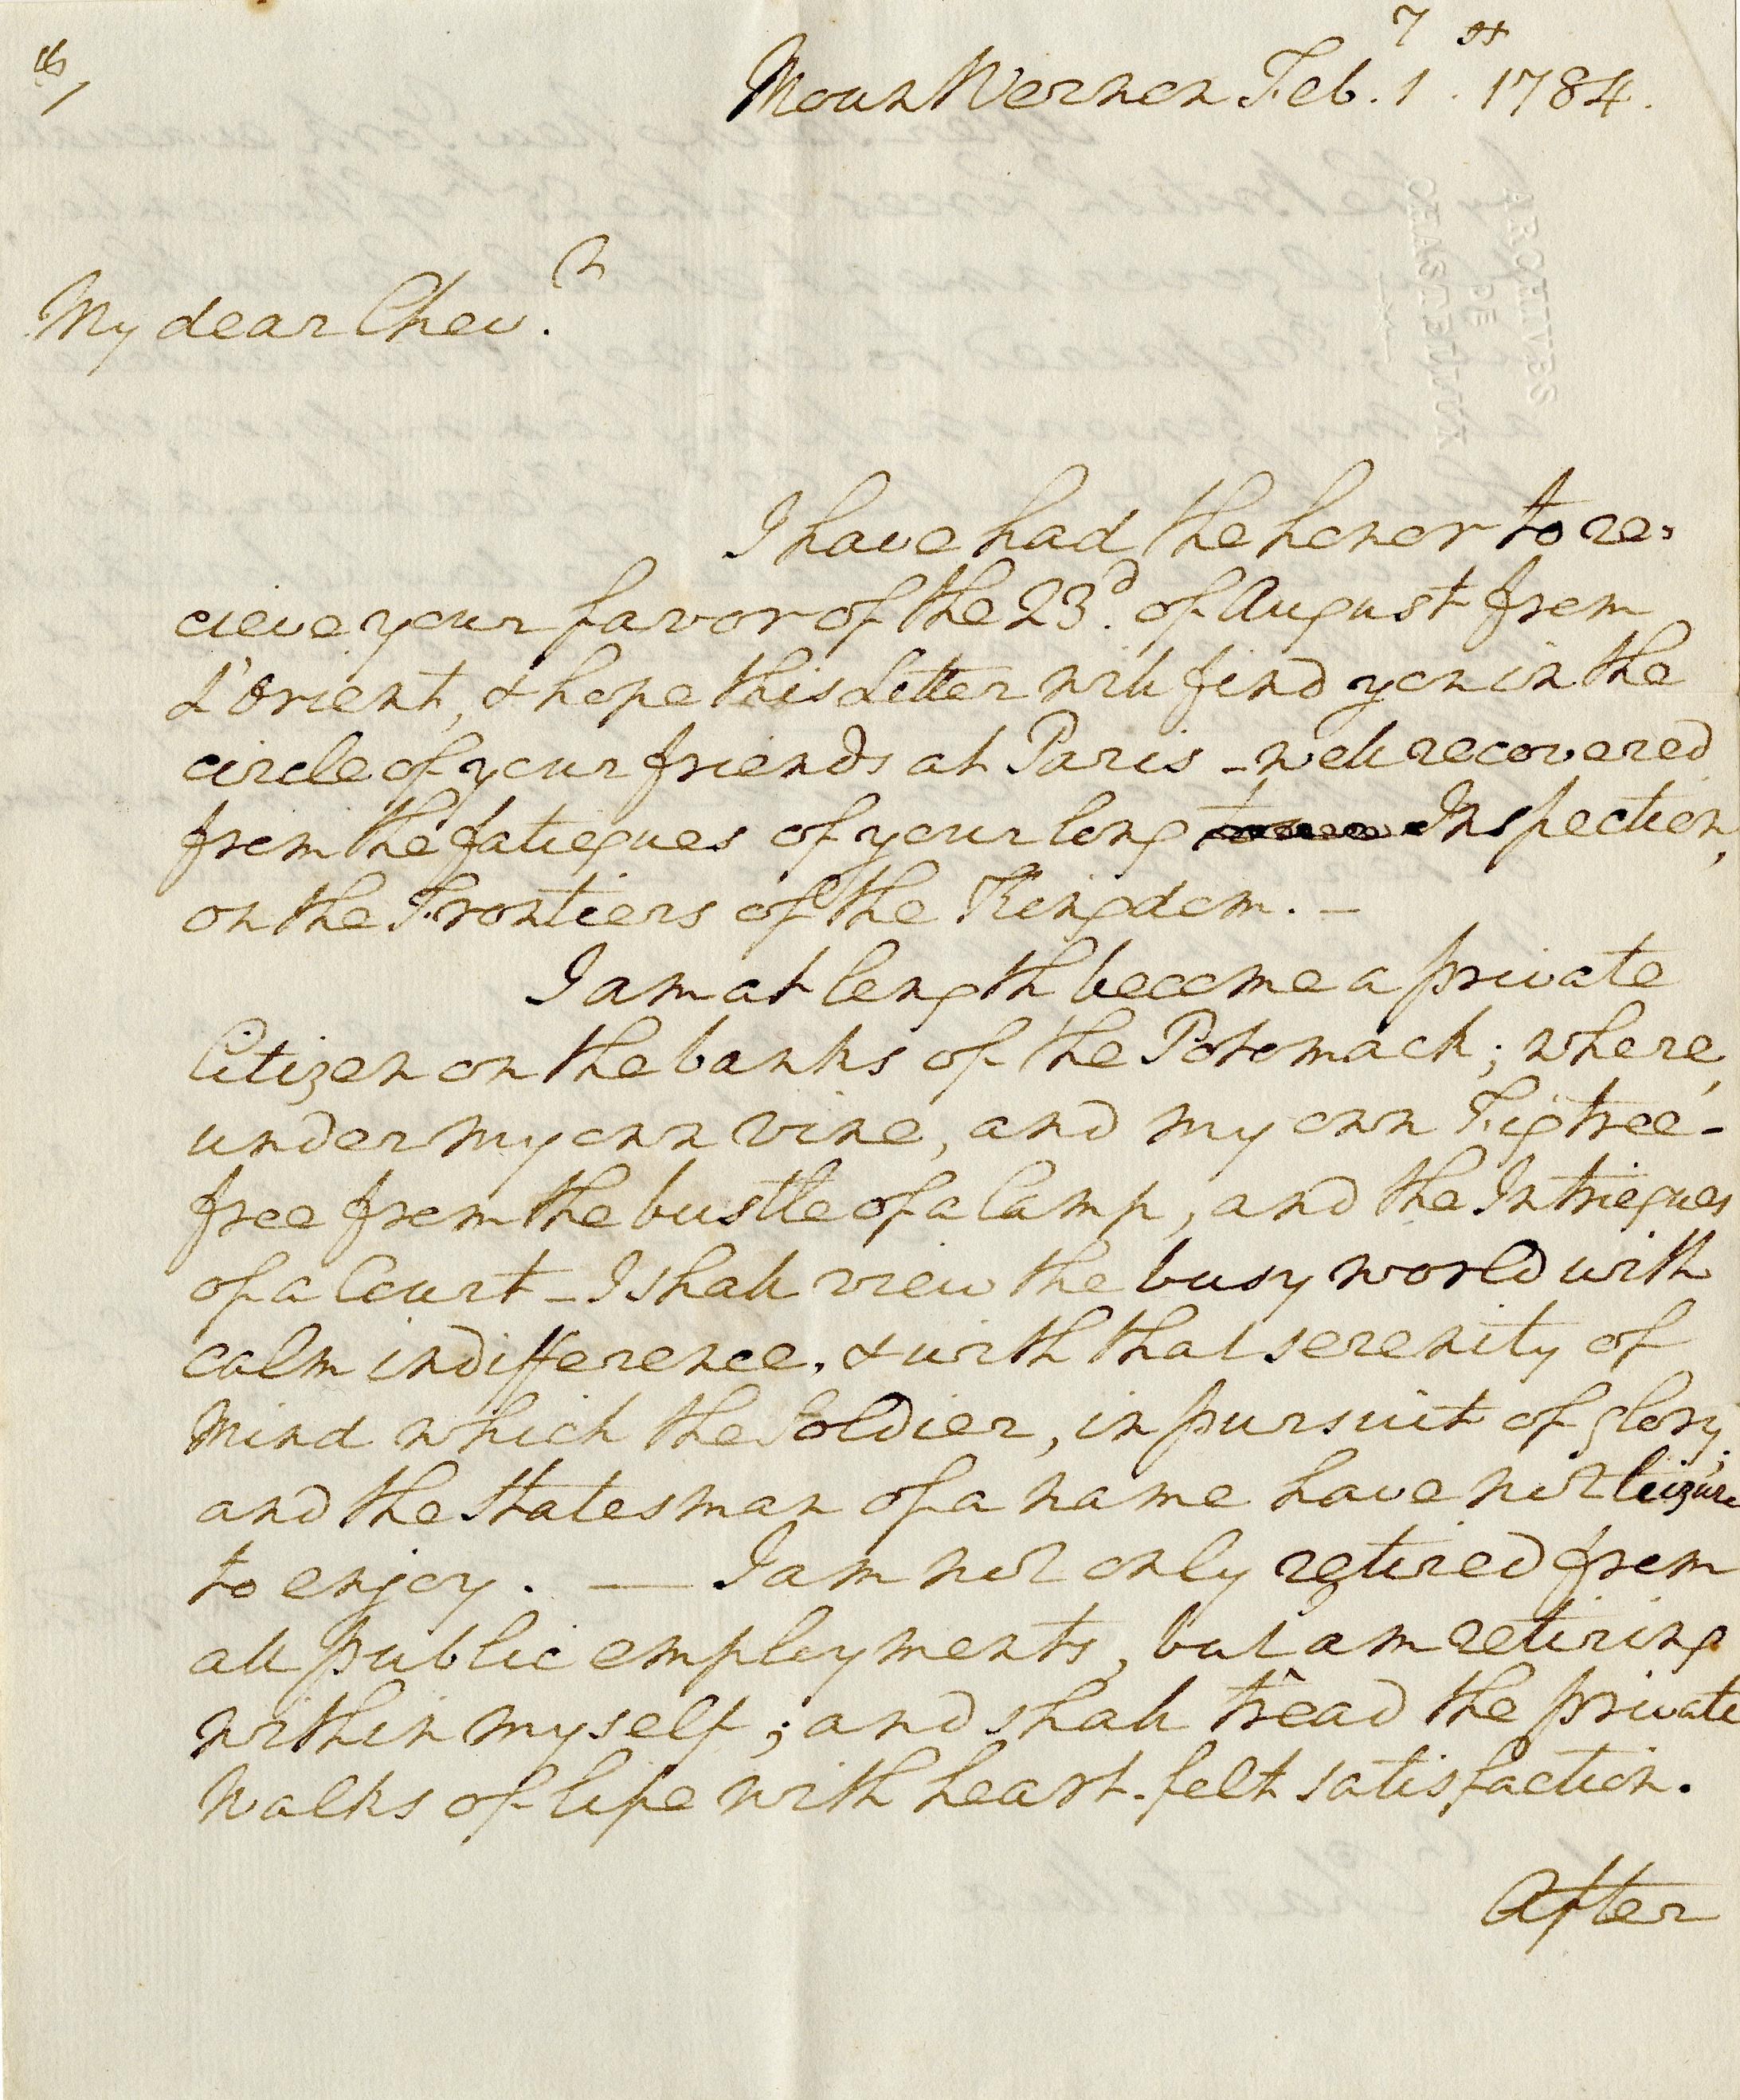 Letter written by George Washington to Chastellux, 1 February 1784. Washington Library at Mount Vernon. Courtesy of Ann Cady Scott.